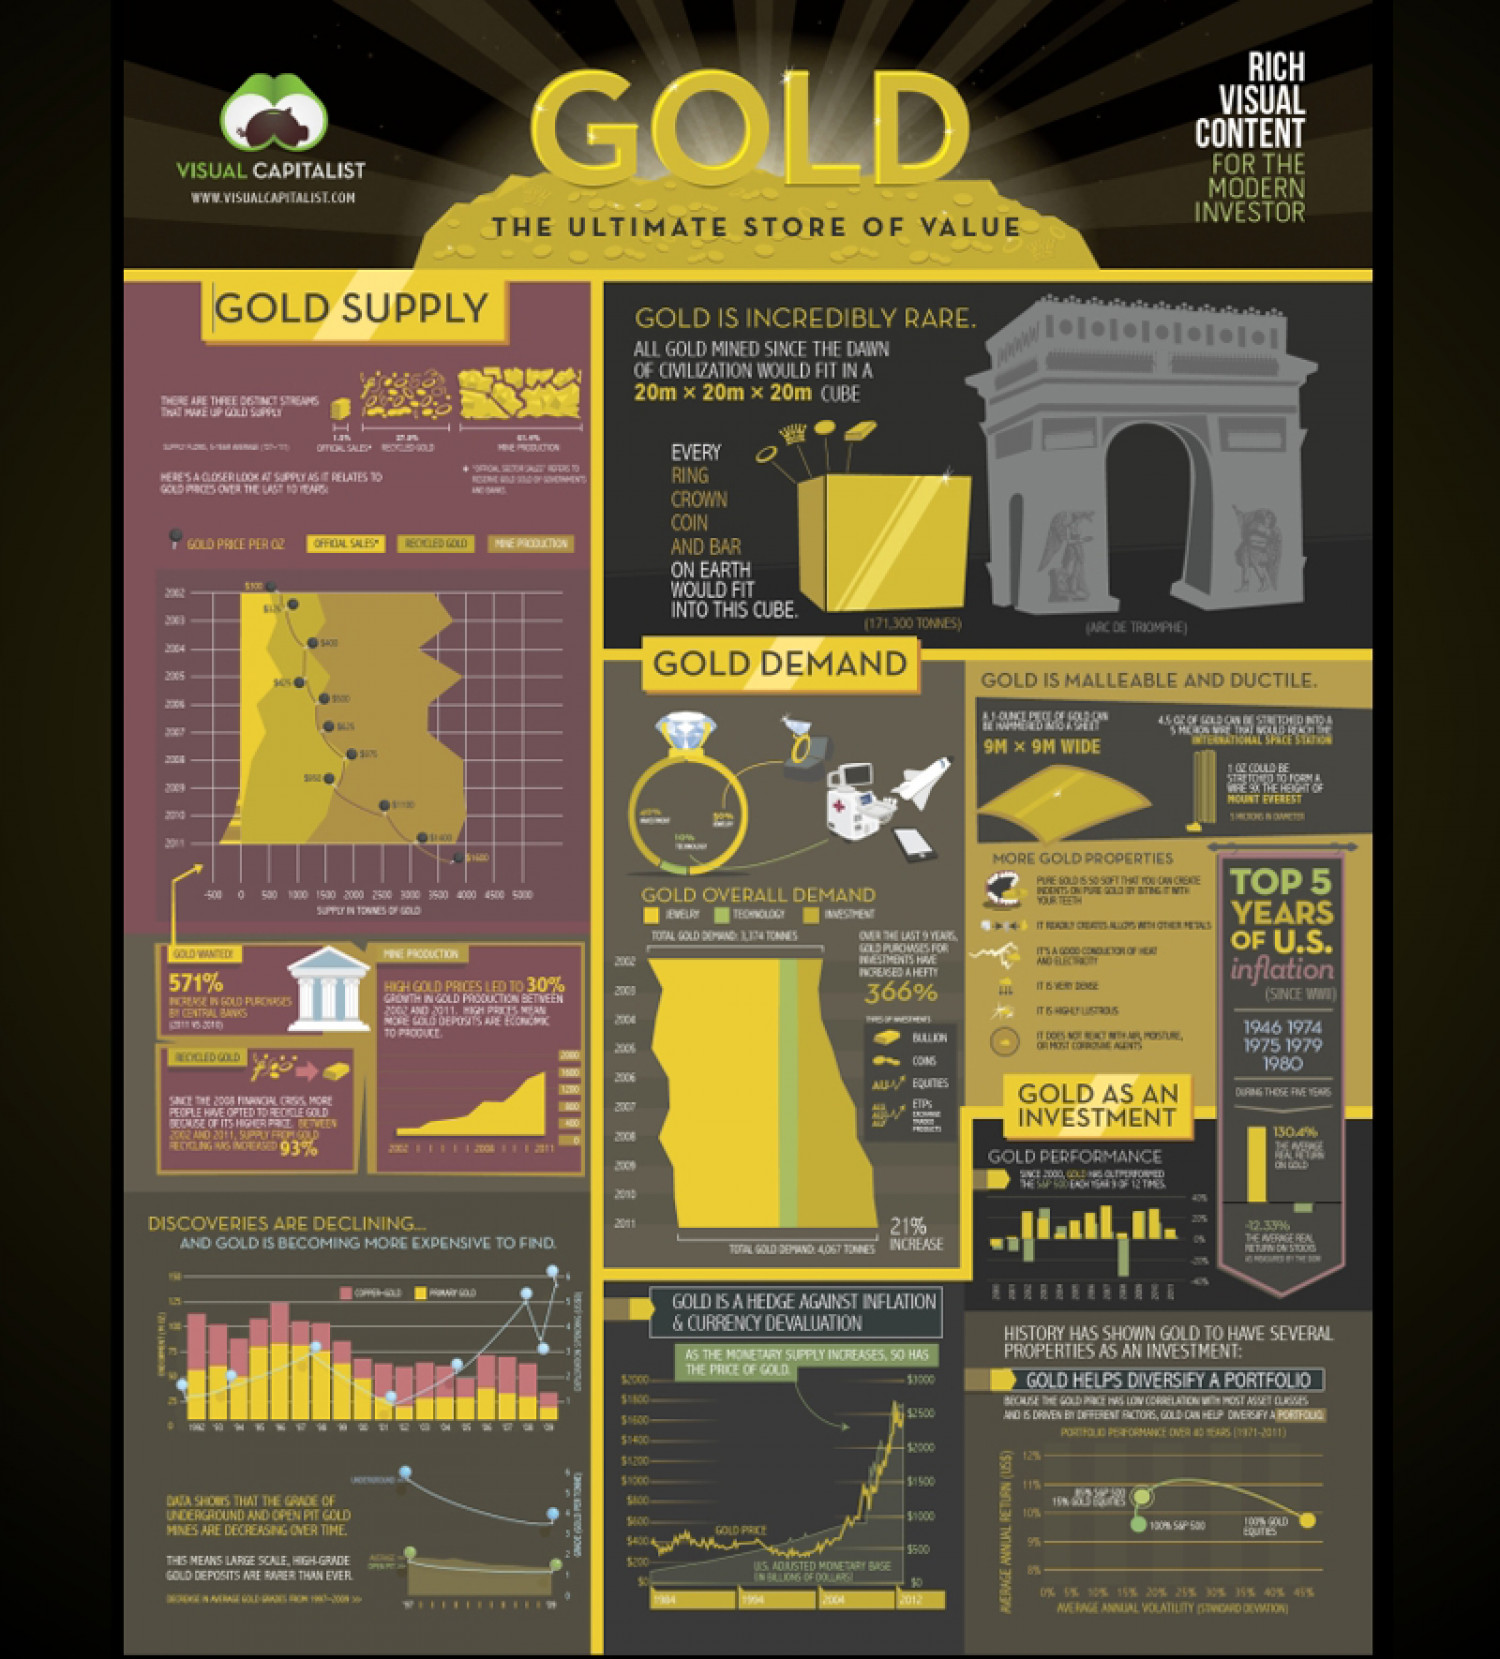 Gold investment strategies Infographic